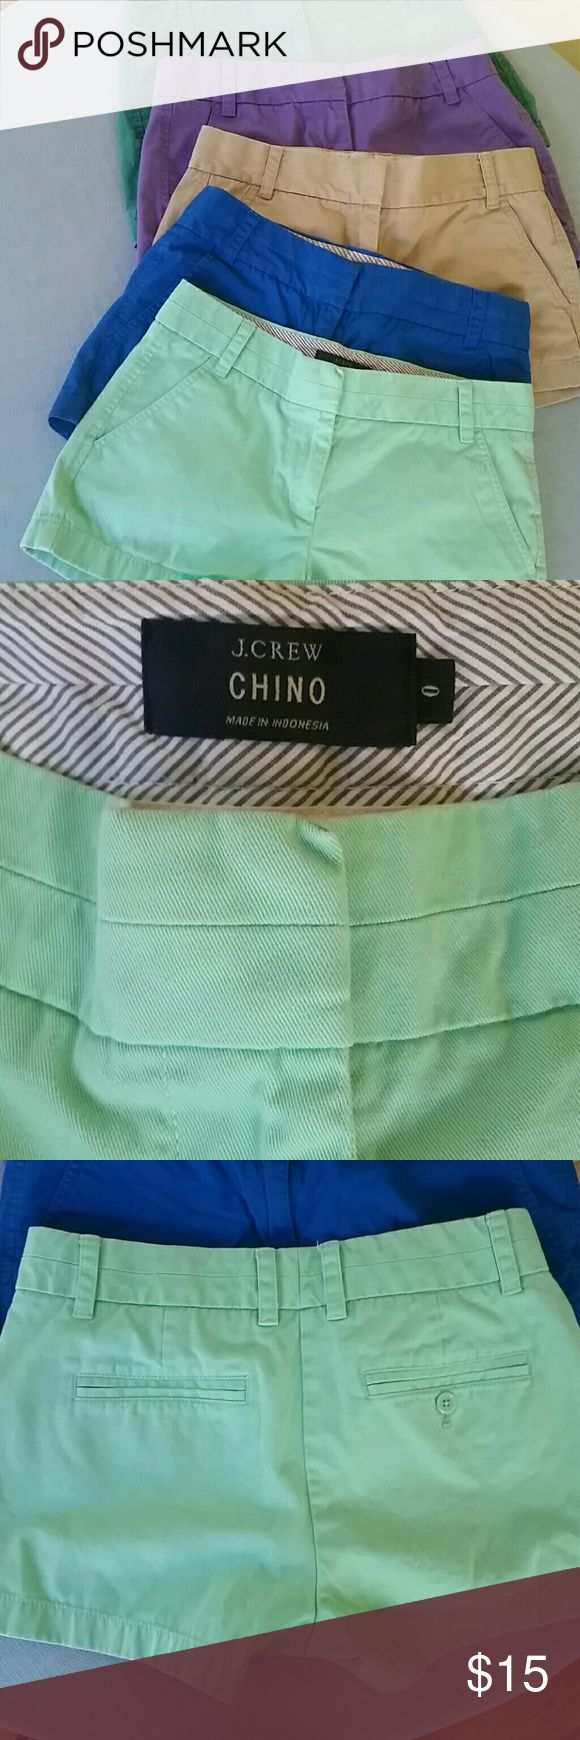 JCrew mint green shorts All cotton, 3 inch inseam. See other listings for additional colors & sizes. J. Crew Shorts